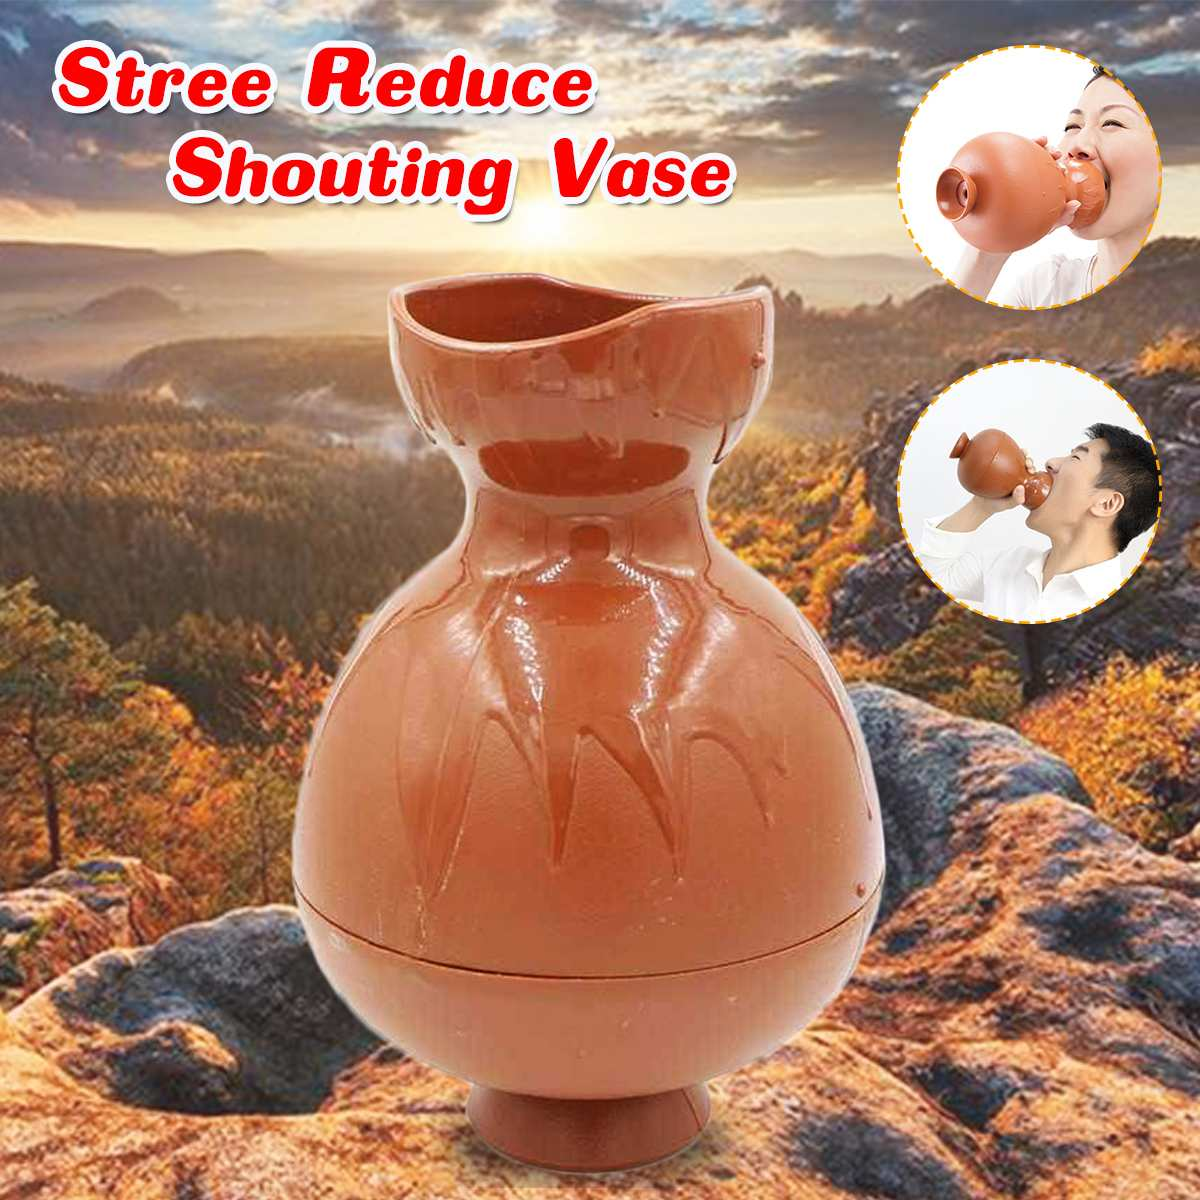 Adult Relief Stress Vent Shouting Vase Anti Stress Toy Novelty Funny Idea Gift Screaming Kettle